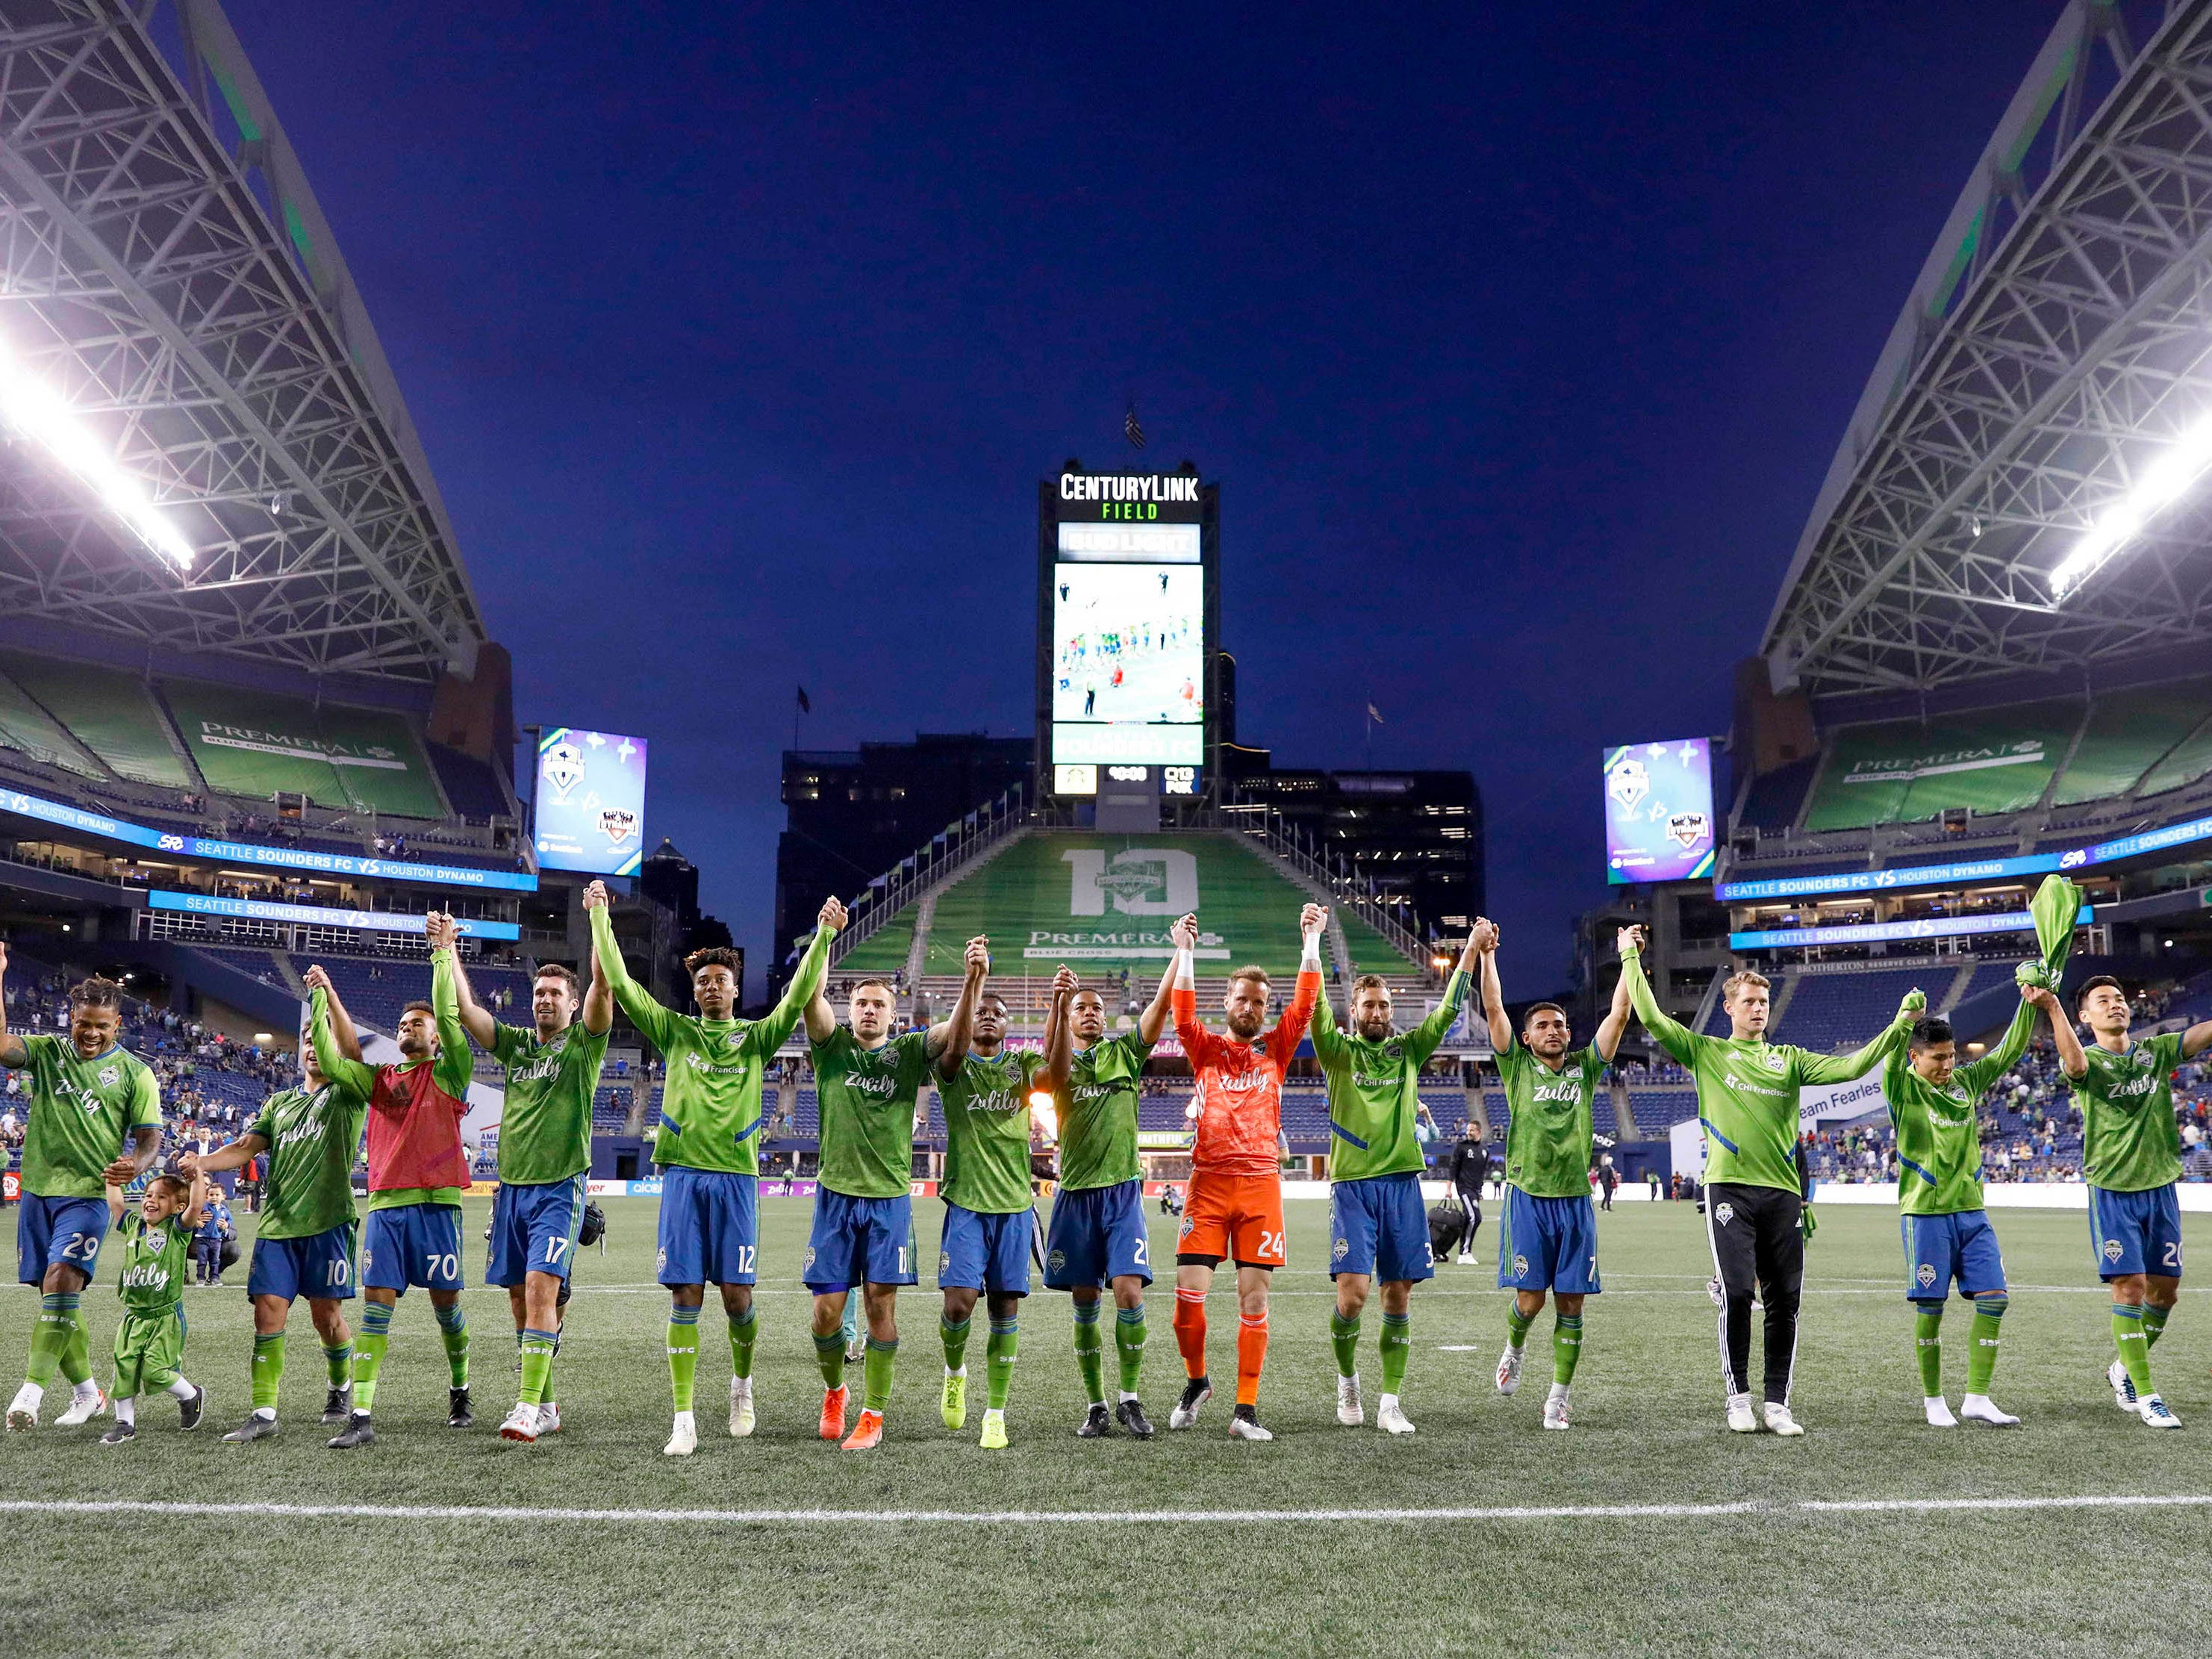 May 11: Seattle Sounders FC players take a bow to their supporters following a 1-0 victory against the Houston Dynamo at CenturyLink Field.